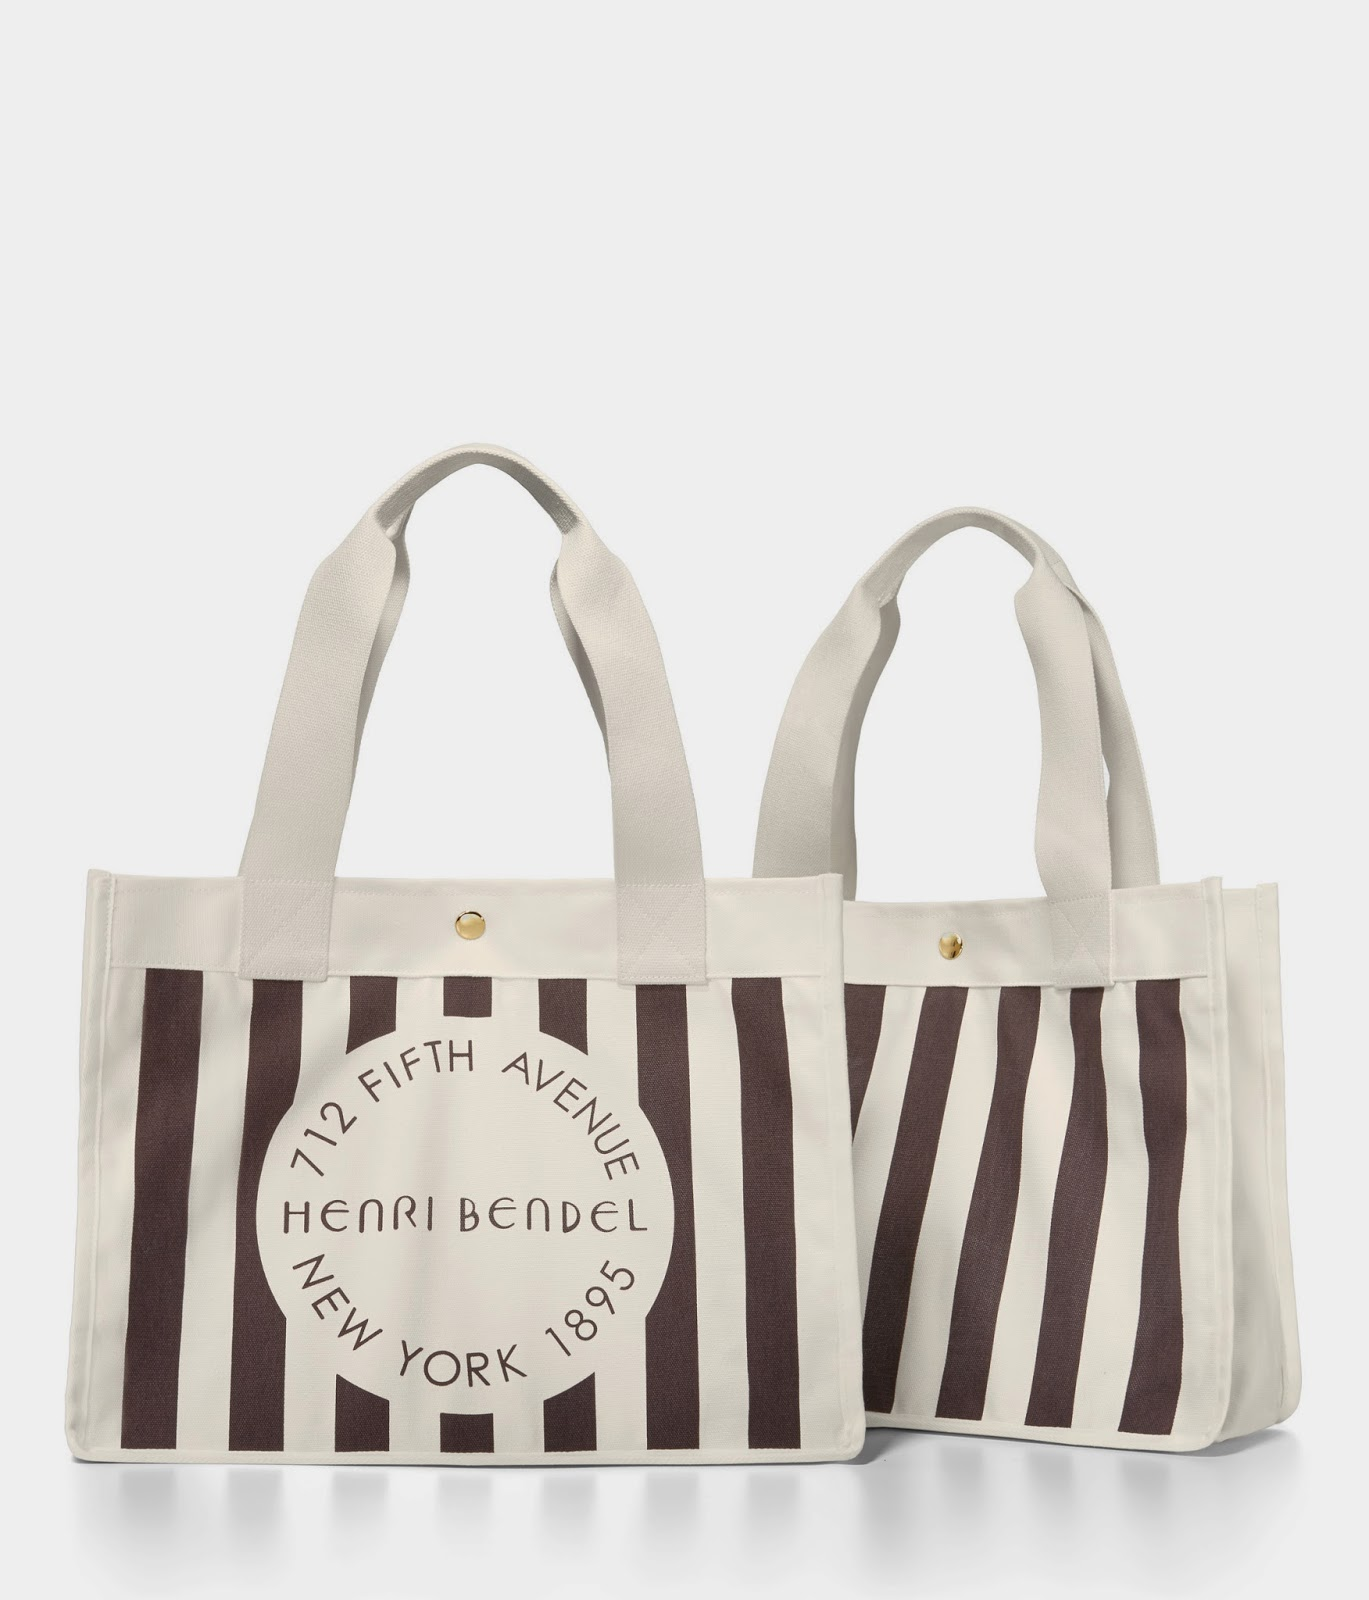 Henri Bendel Gift with Purchase Tote